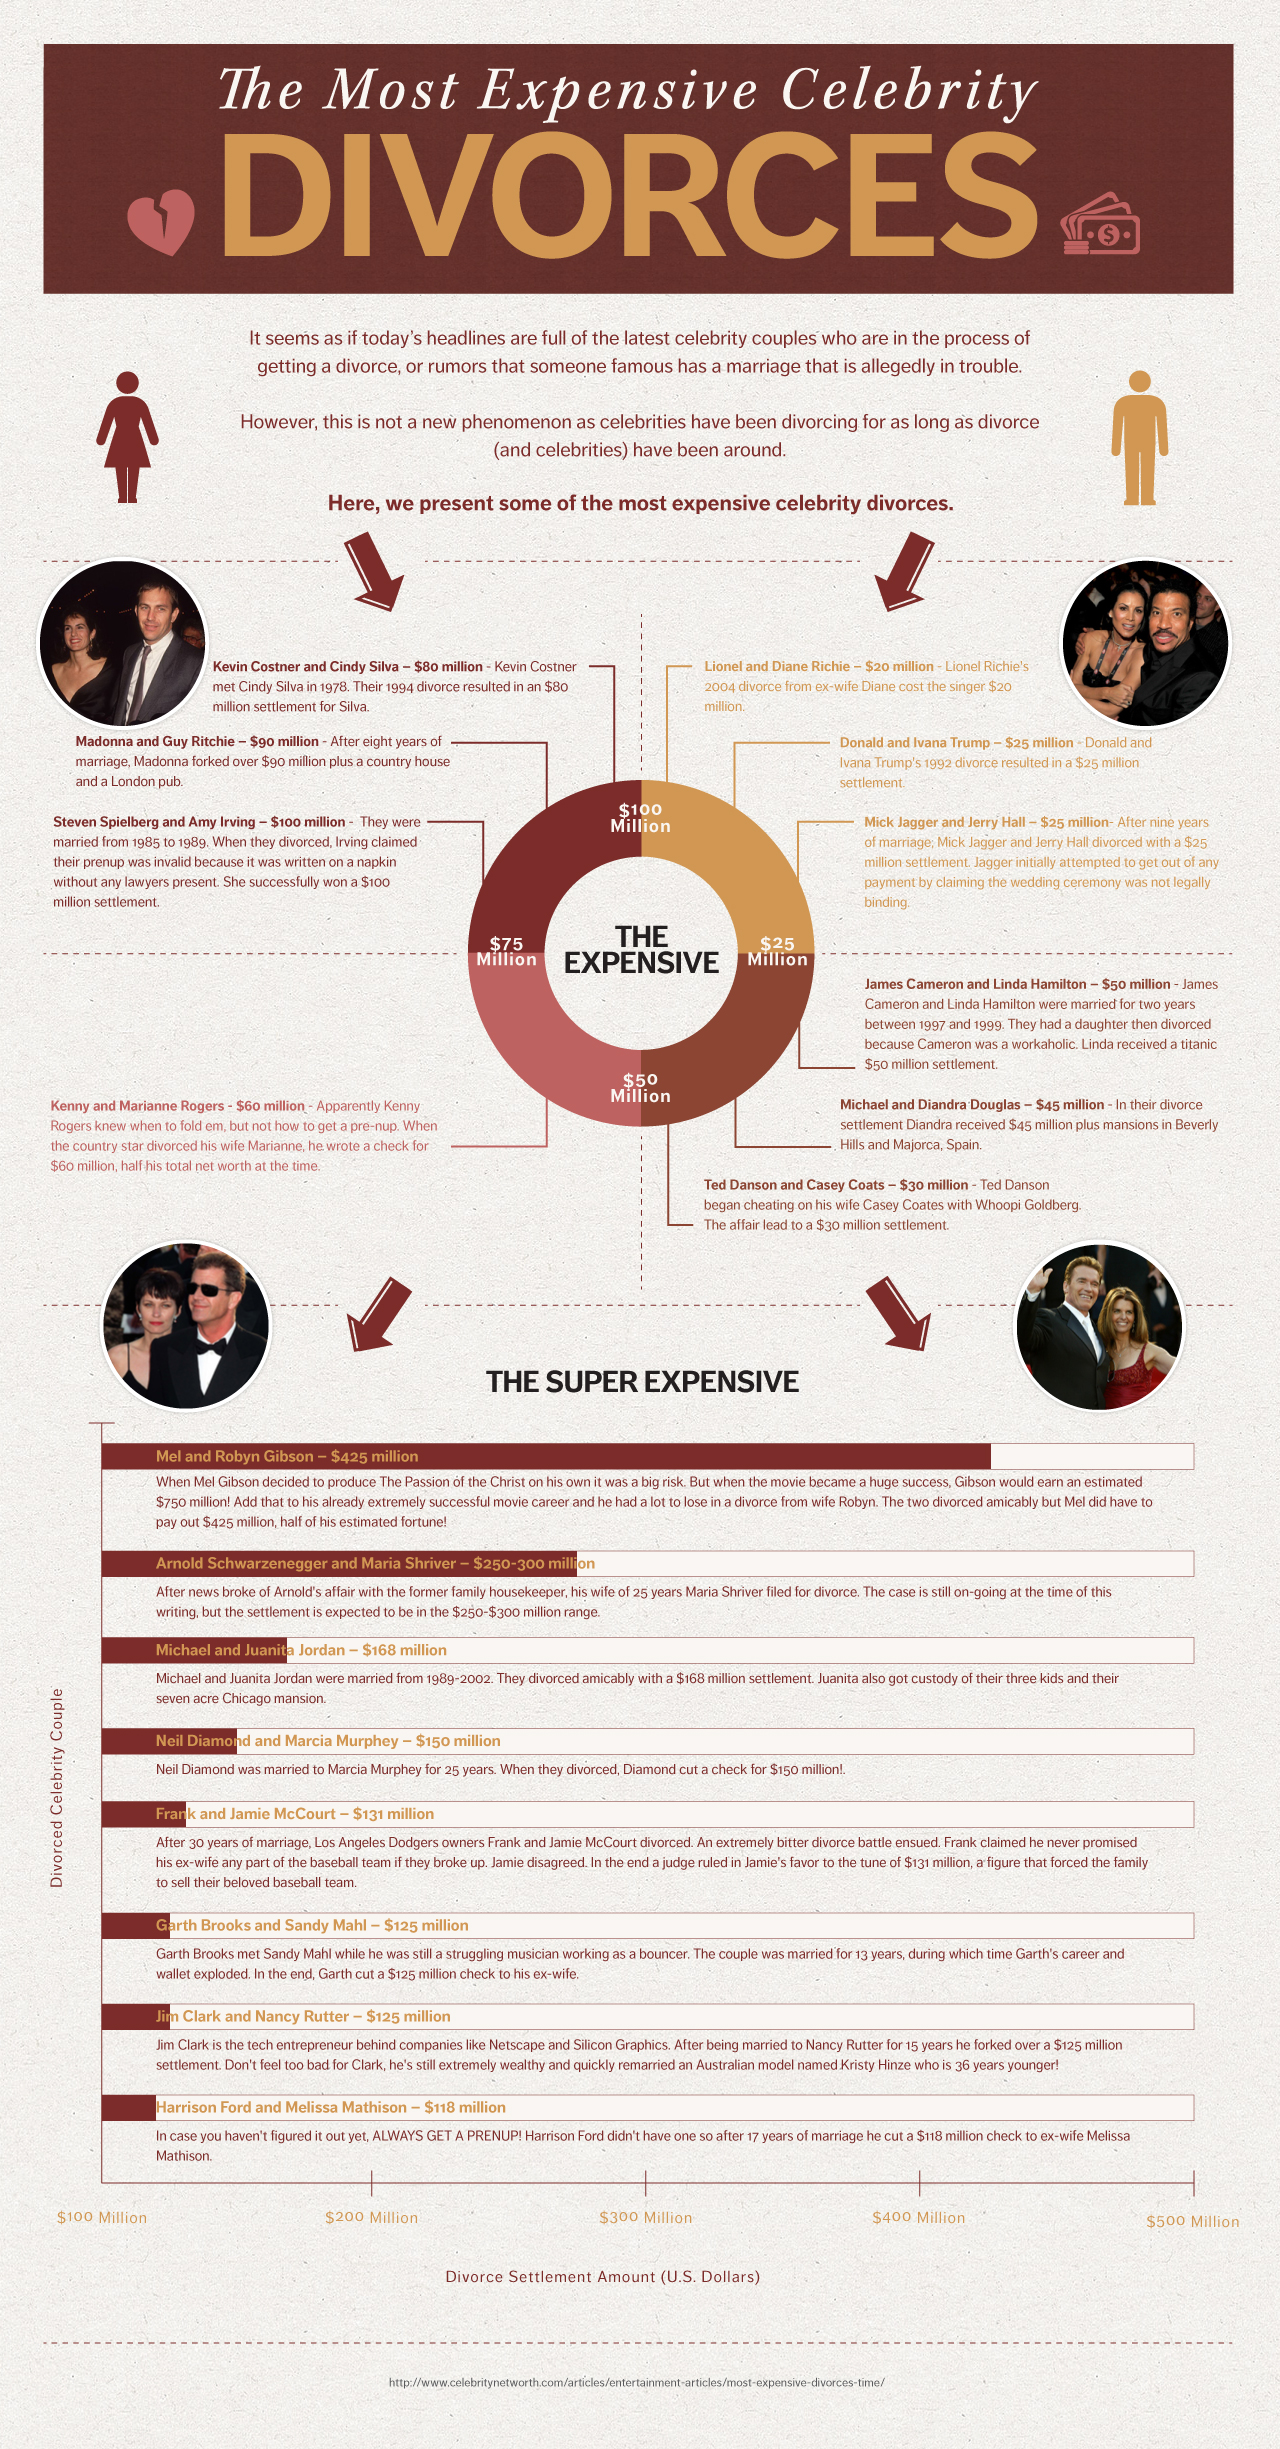 http://www.ruvololaw.com/blog/most-expensive-celebrity-divorces-infographic